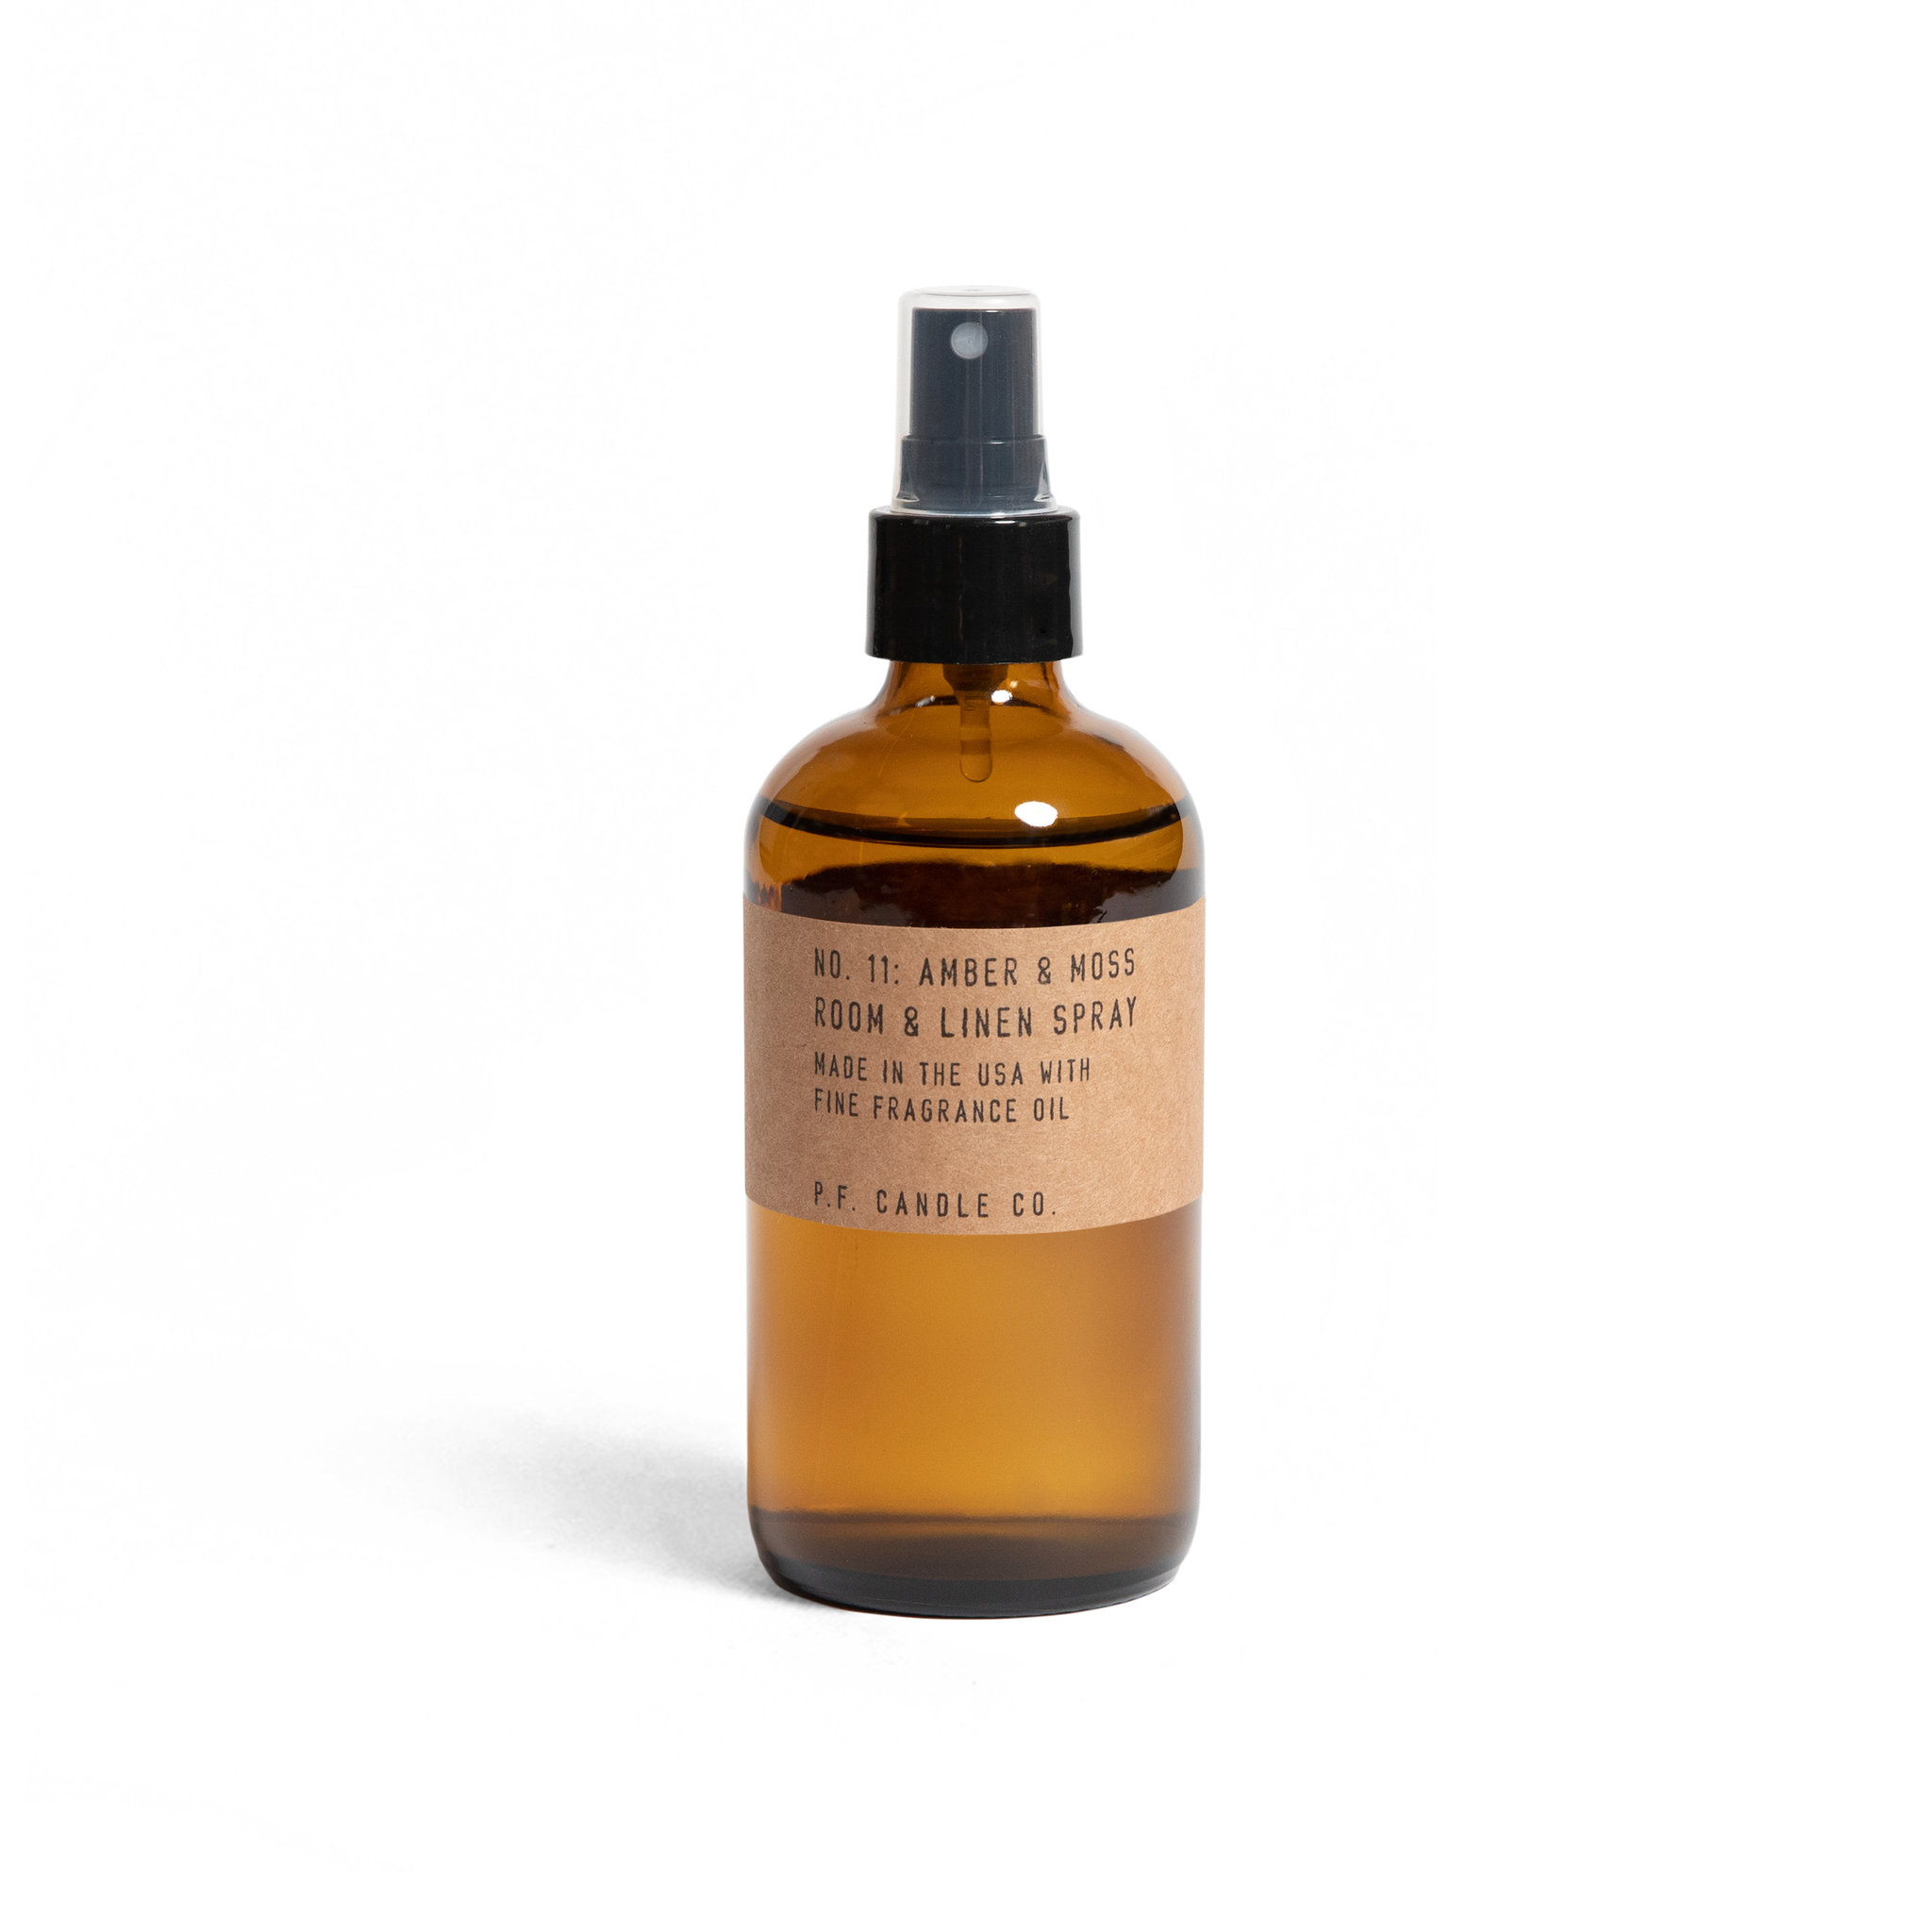 Amber & Moss Room & Linen Spray - New Origin Shop